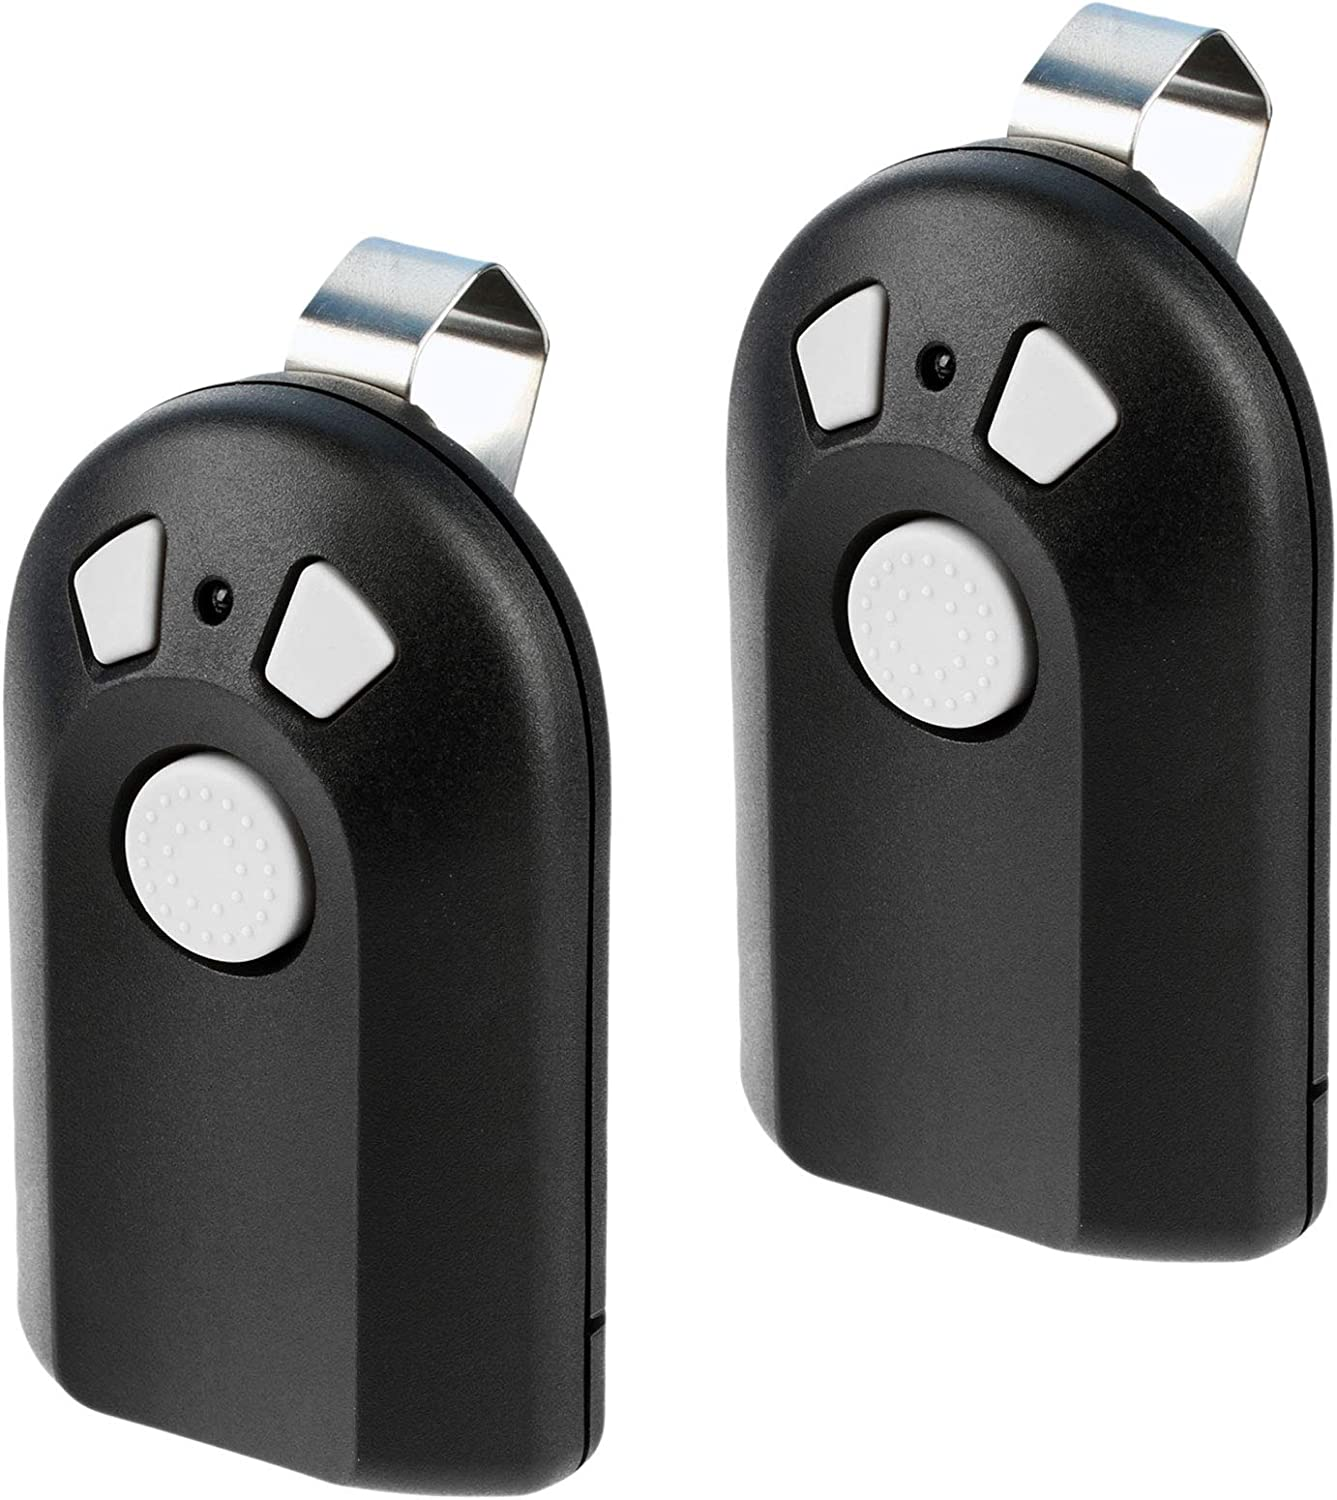 2 for Genie Garage Door Remote Intellicode ACSCTG Type 3